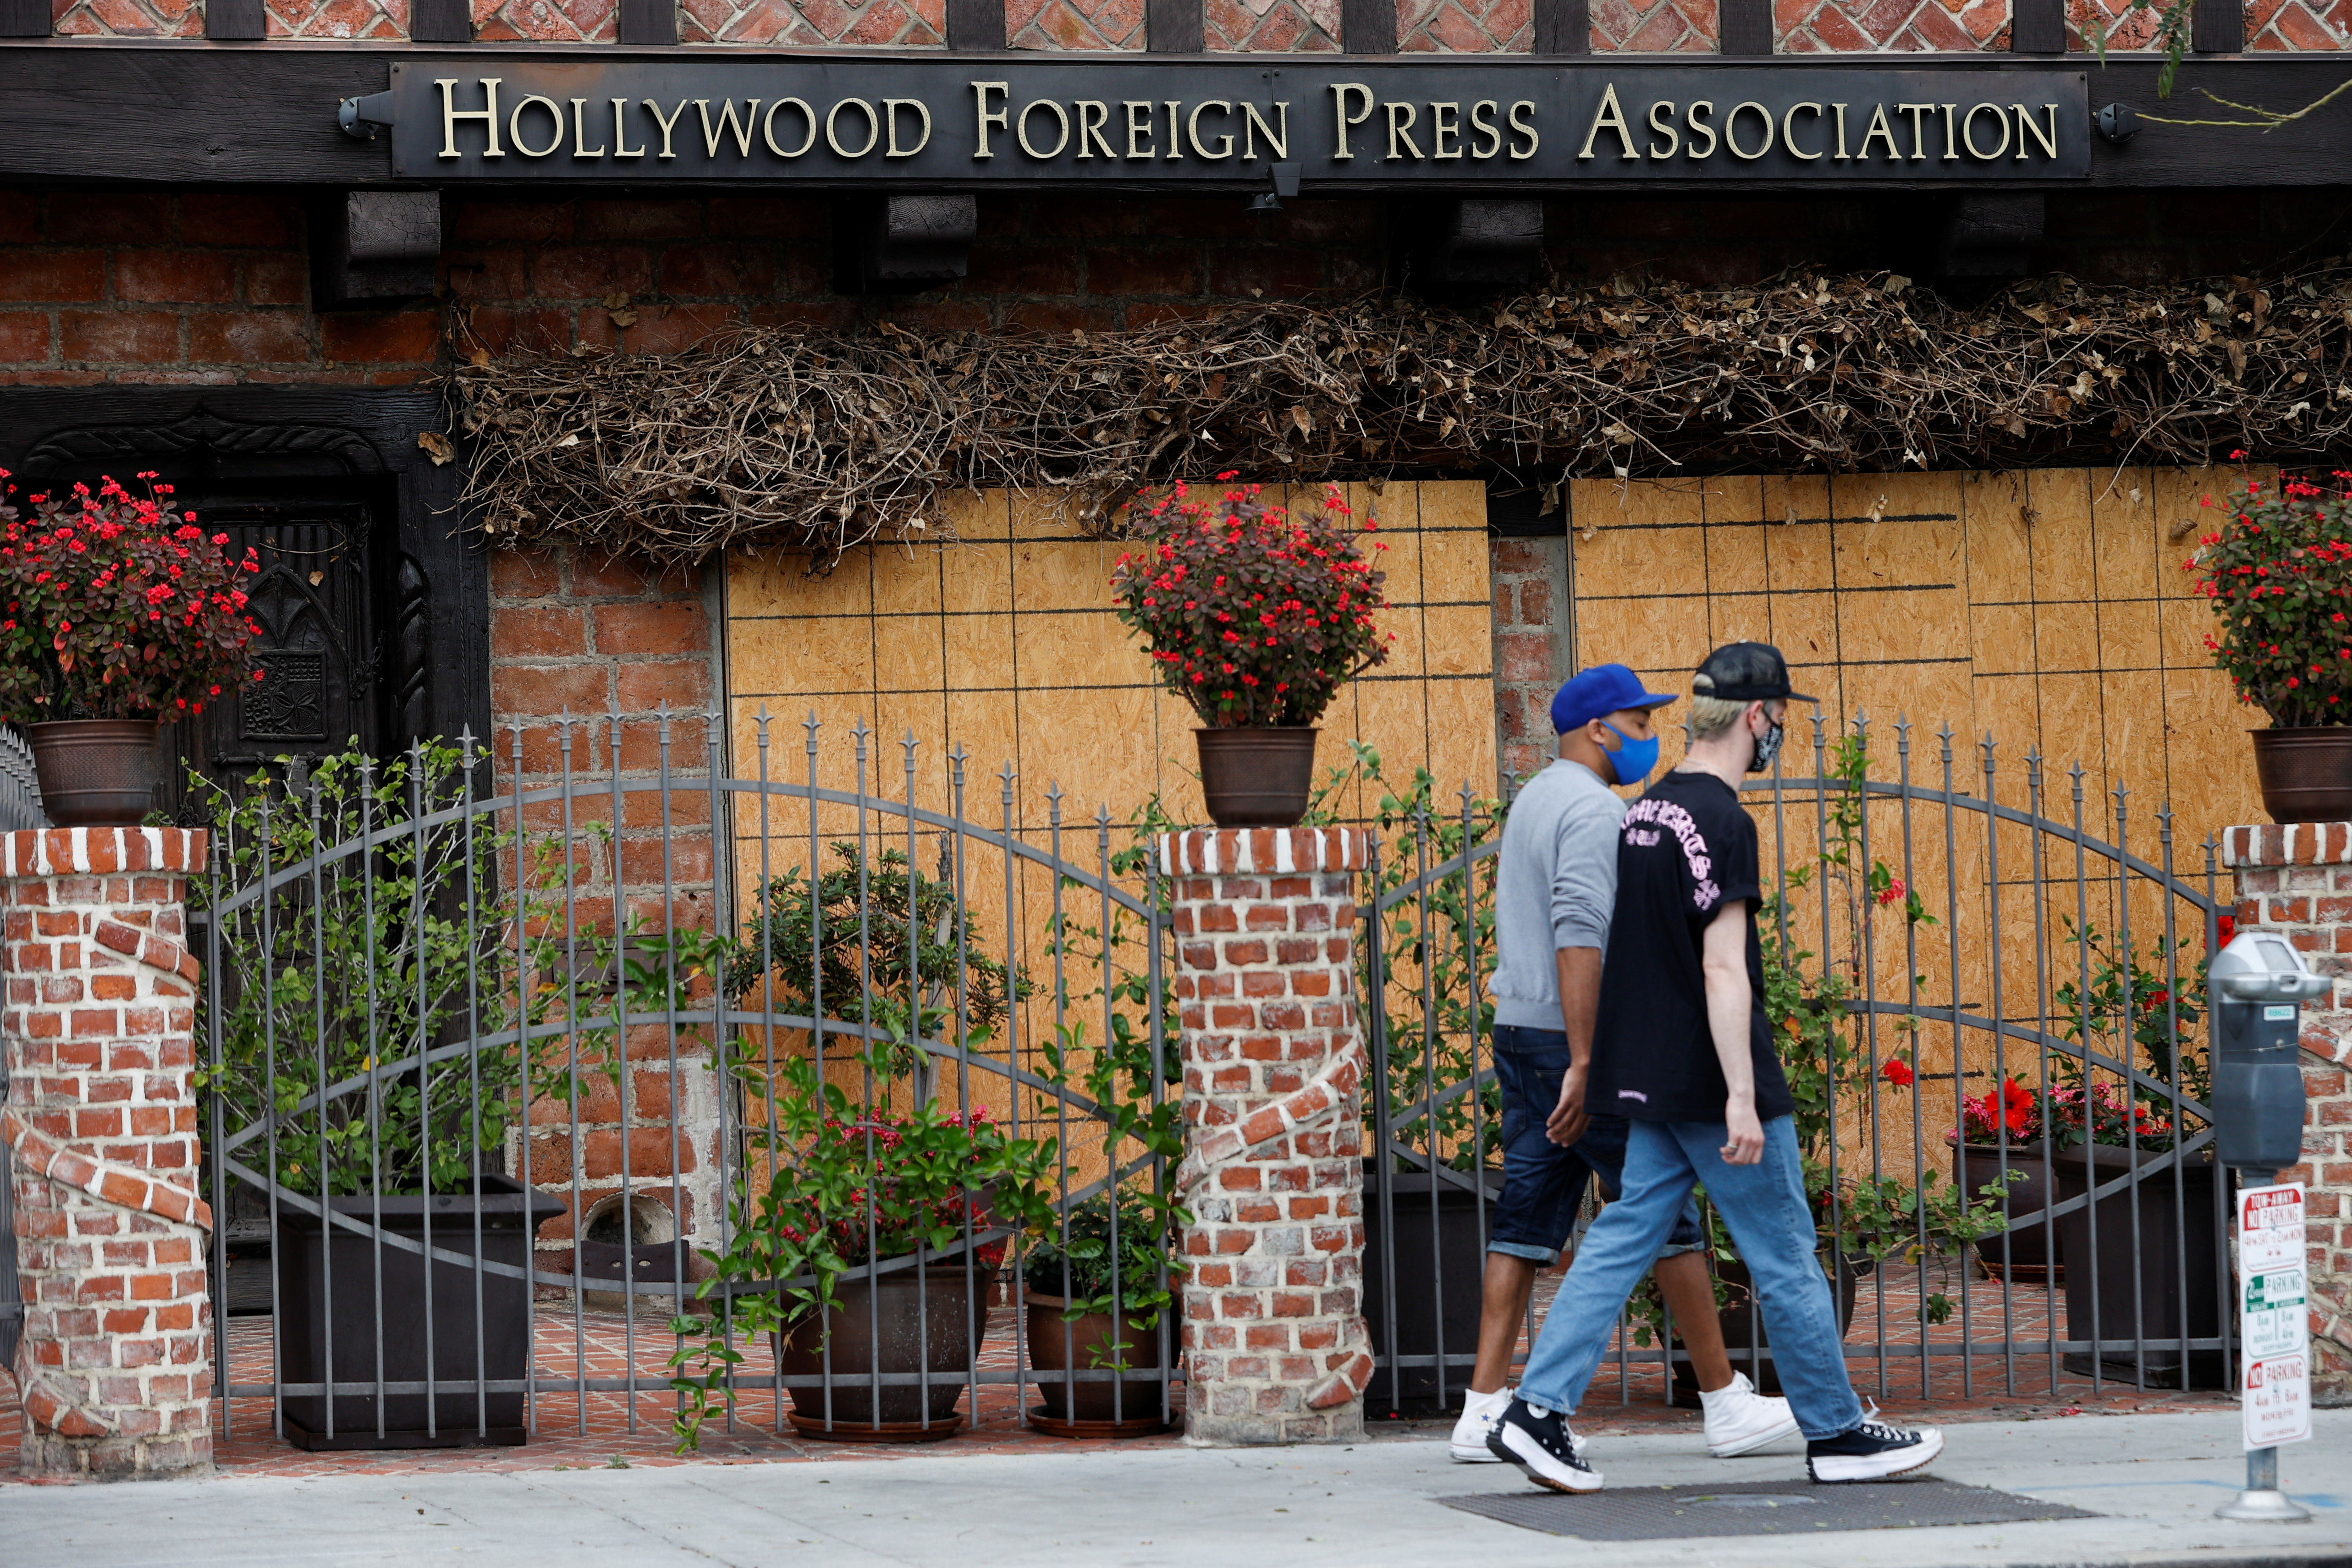 People walk past the Hollywood Foreign Press Association (HFPA) headquarters, in West Hollywood, California, U.S., May 10, 2021. REUTERS/Mario Anzuoni